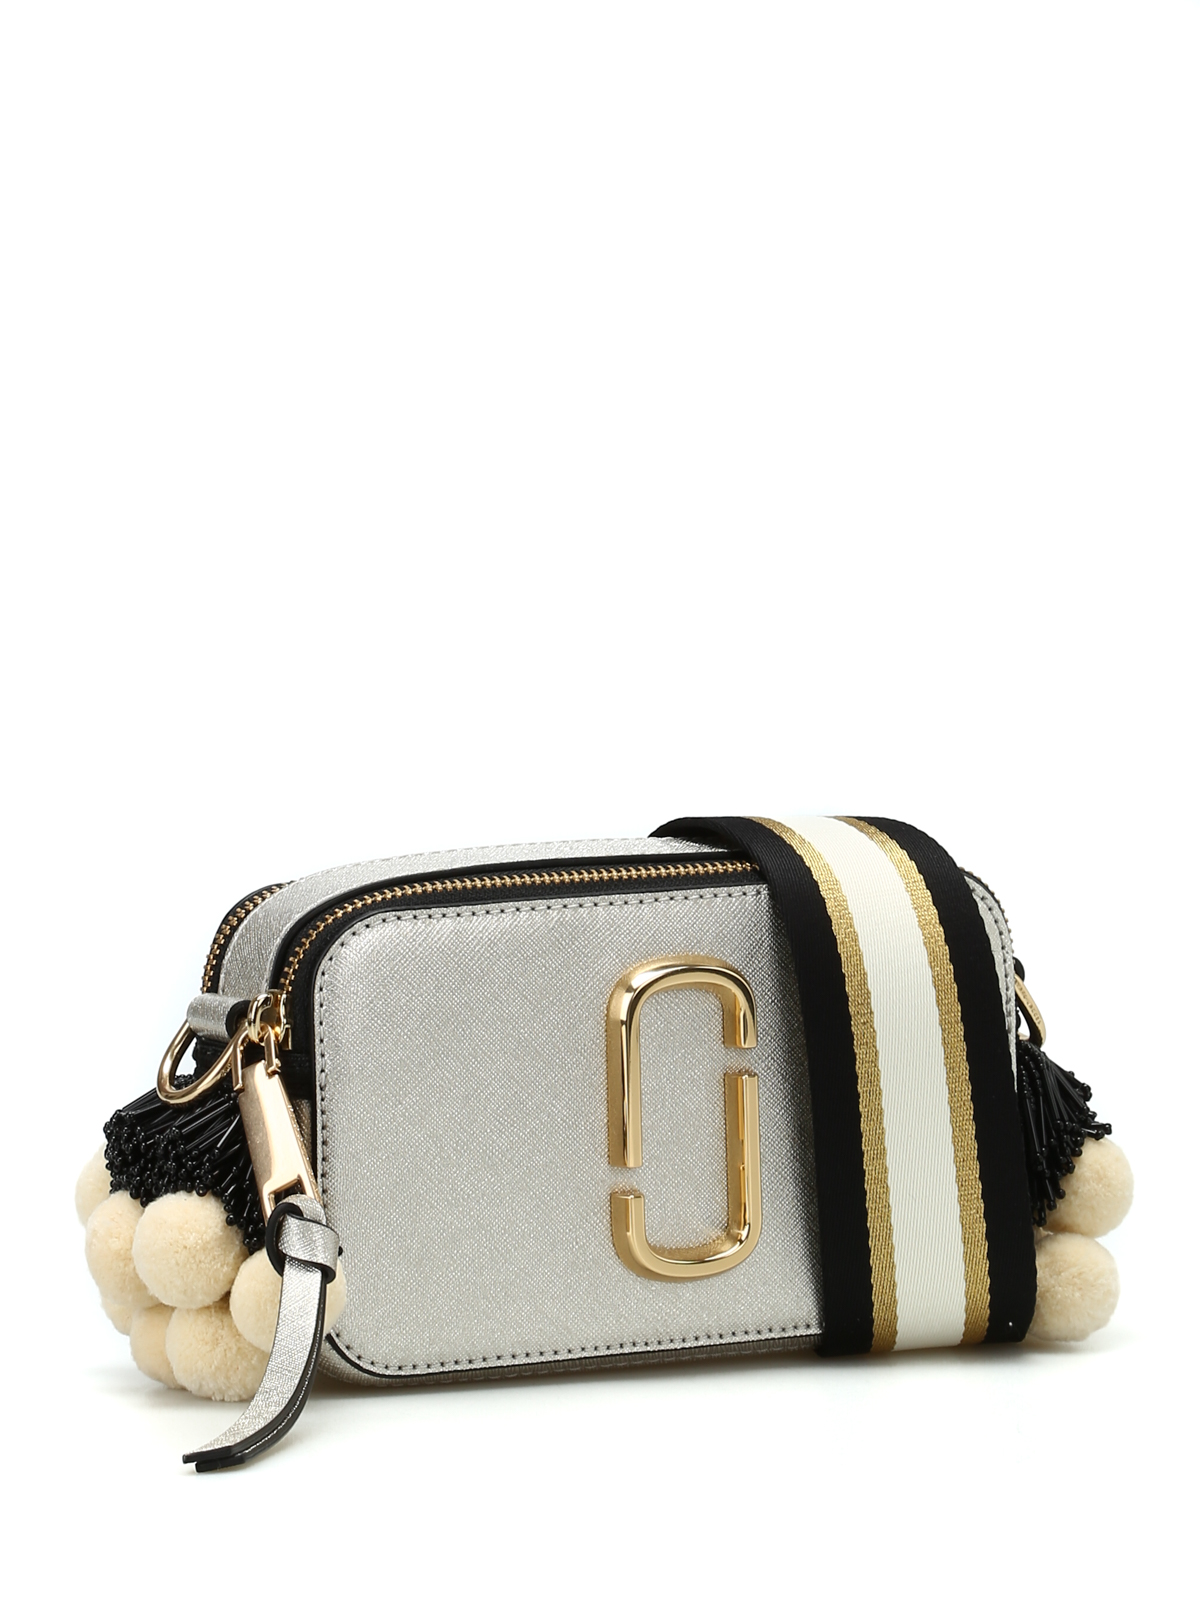 f44bde8612 Marc Jacobs - Snapshot S embellished bag - cross body bags - M0013399048